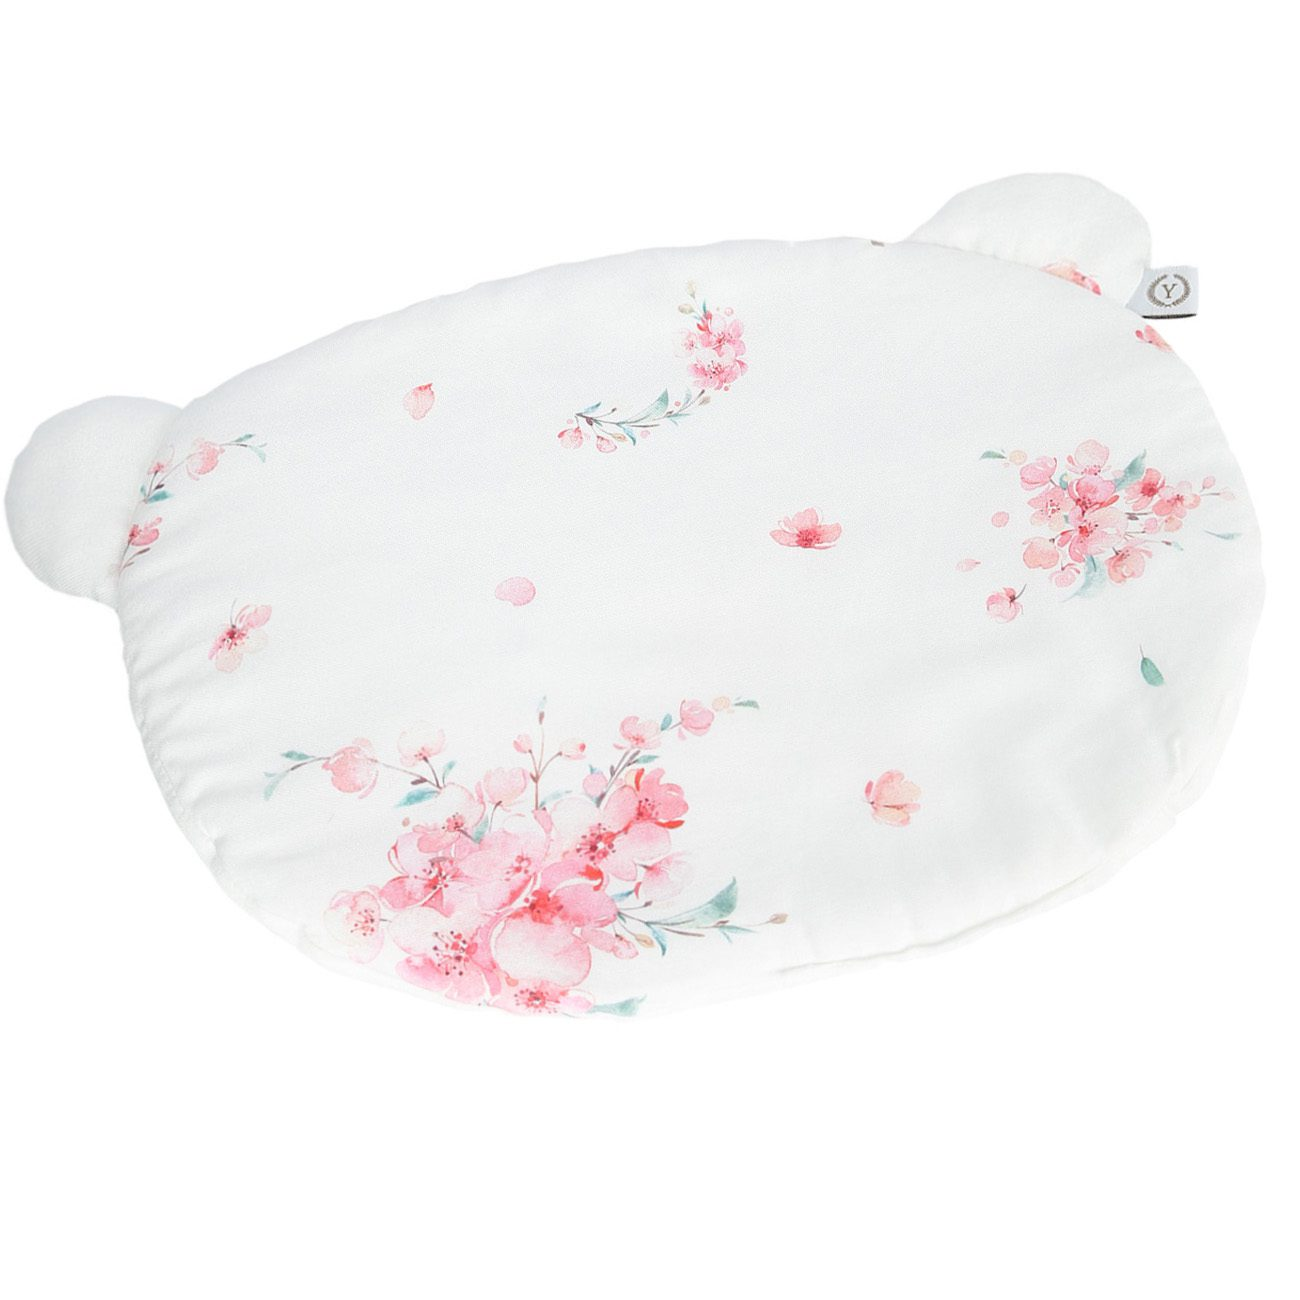 PODUSZKA BAMBUSOWA Z USZAMI - BAMBOO PILLOW WITH EARS JAPANESE FLOWERS YOSOY